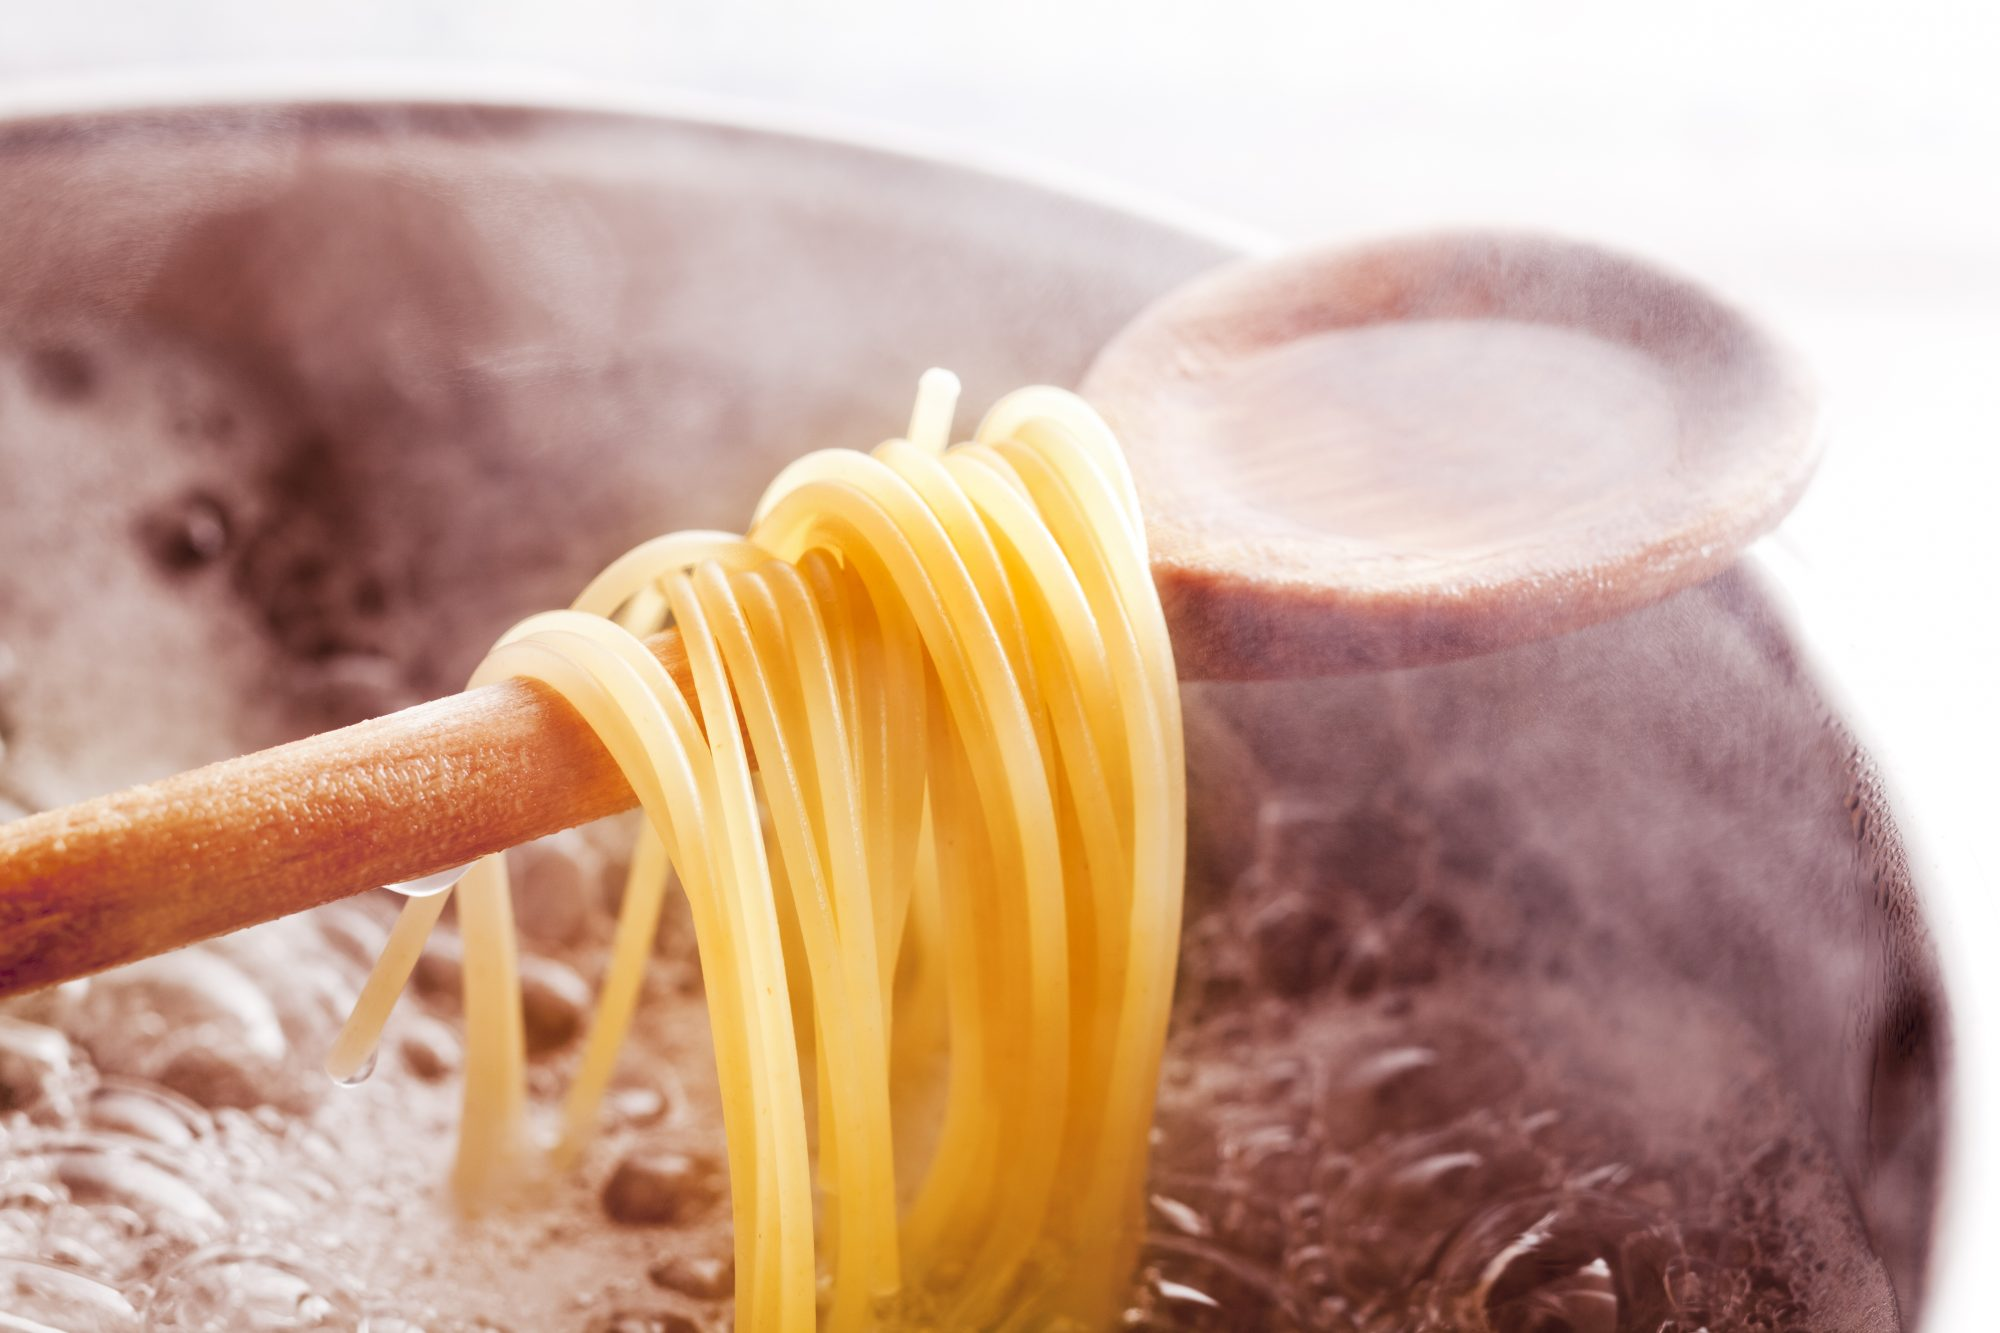 Spaghetti strands on a spoon above boiling water